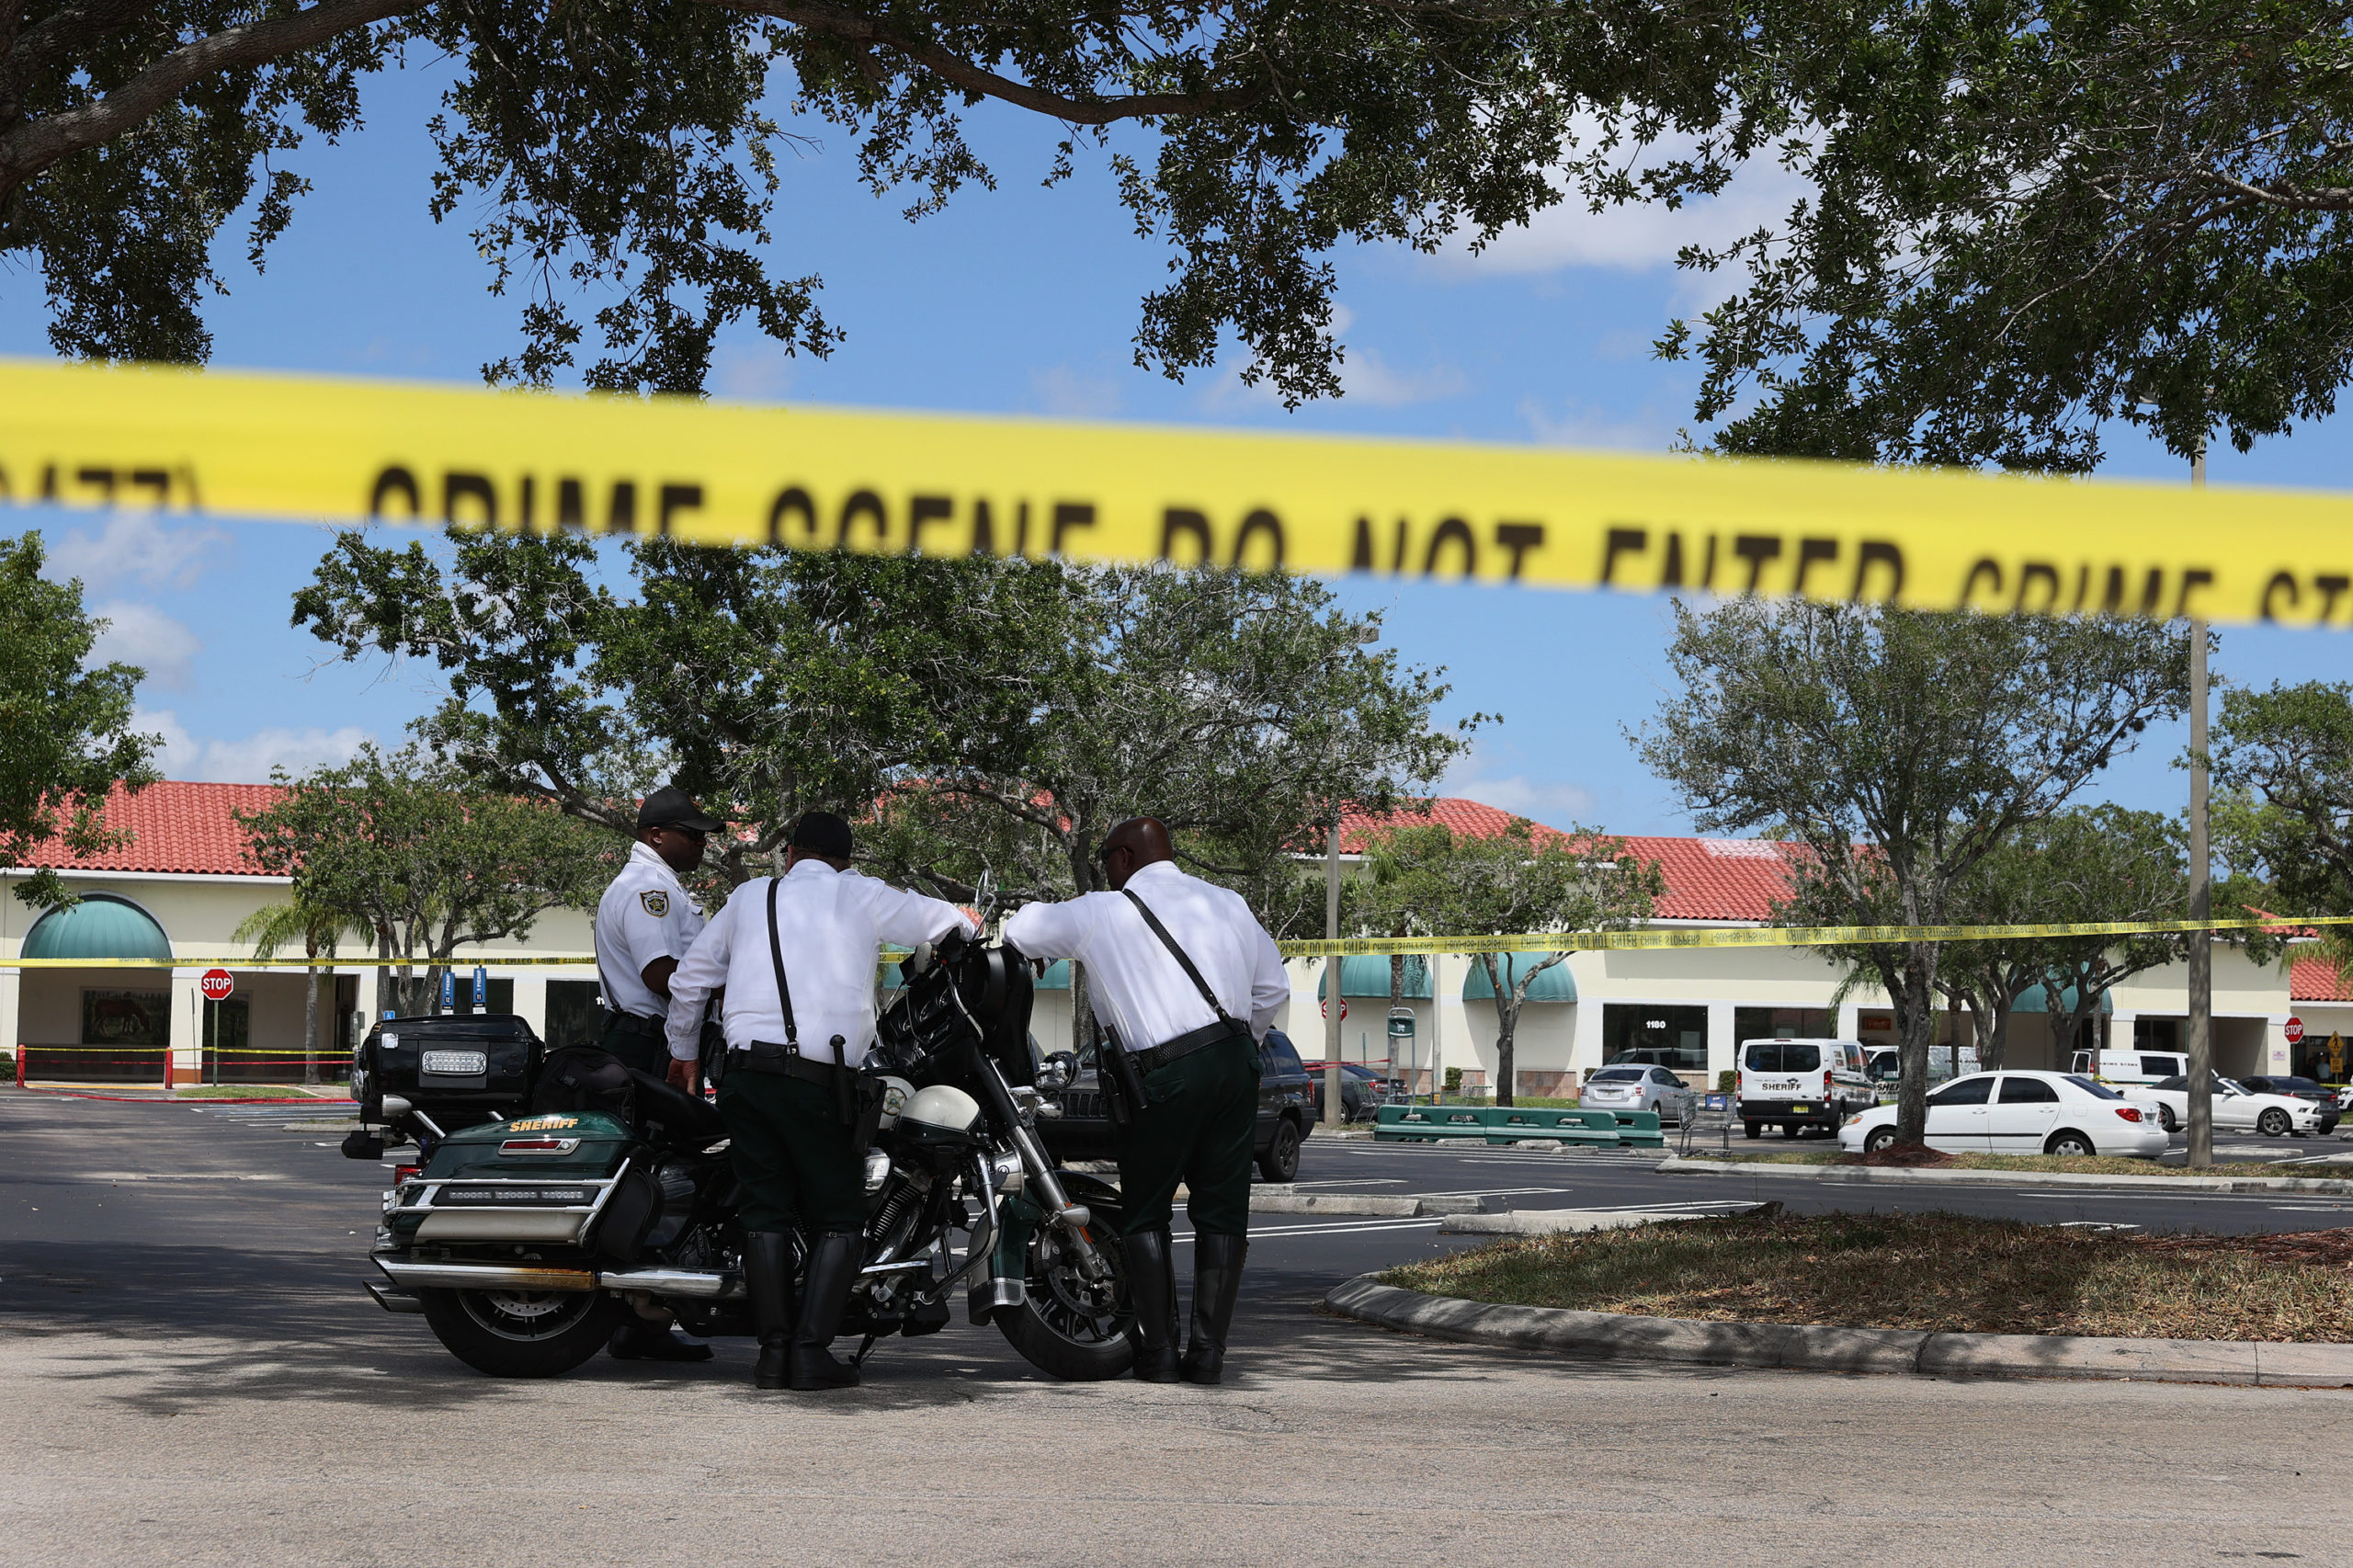 ROYAL PALM BEACH, FLORIDA - JUNE 10: Palm Beach County Sheriff's officers stand outside of a Publix supermarket where a woman, child and a man were found shot to death on June 10, 2021 in Royal Palm Beach, Florida. Law enforcement officials continue to investigate the crime scene for clues as to why the shooting occurred. (Photo by Joe Raedle/Getty Images)